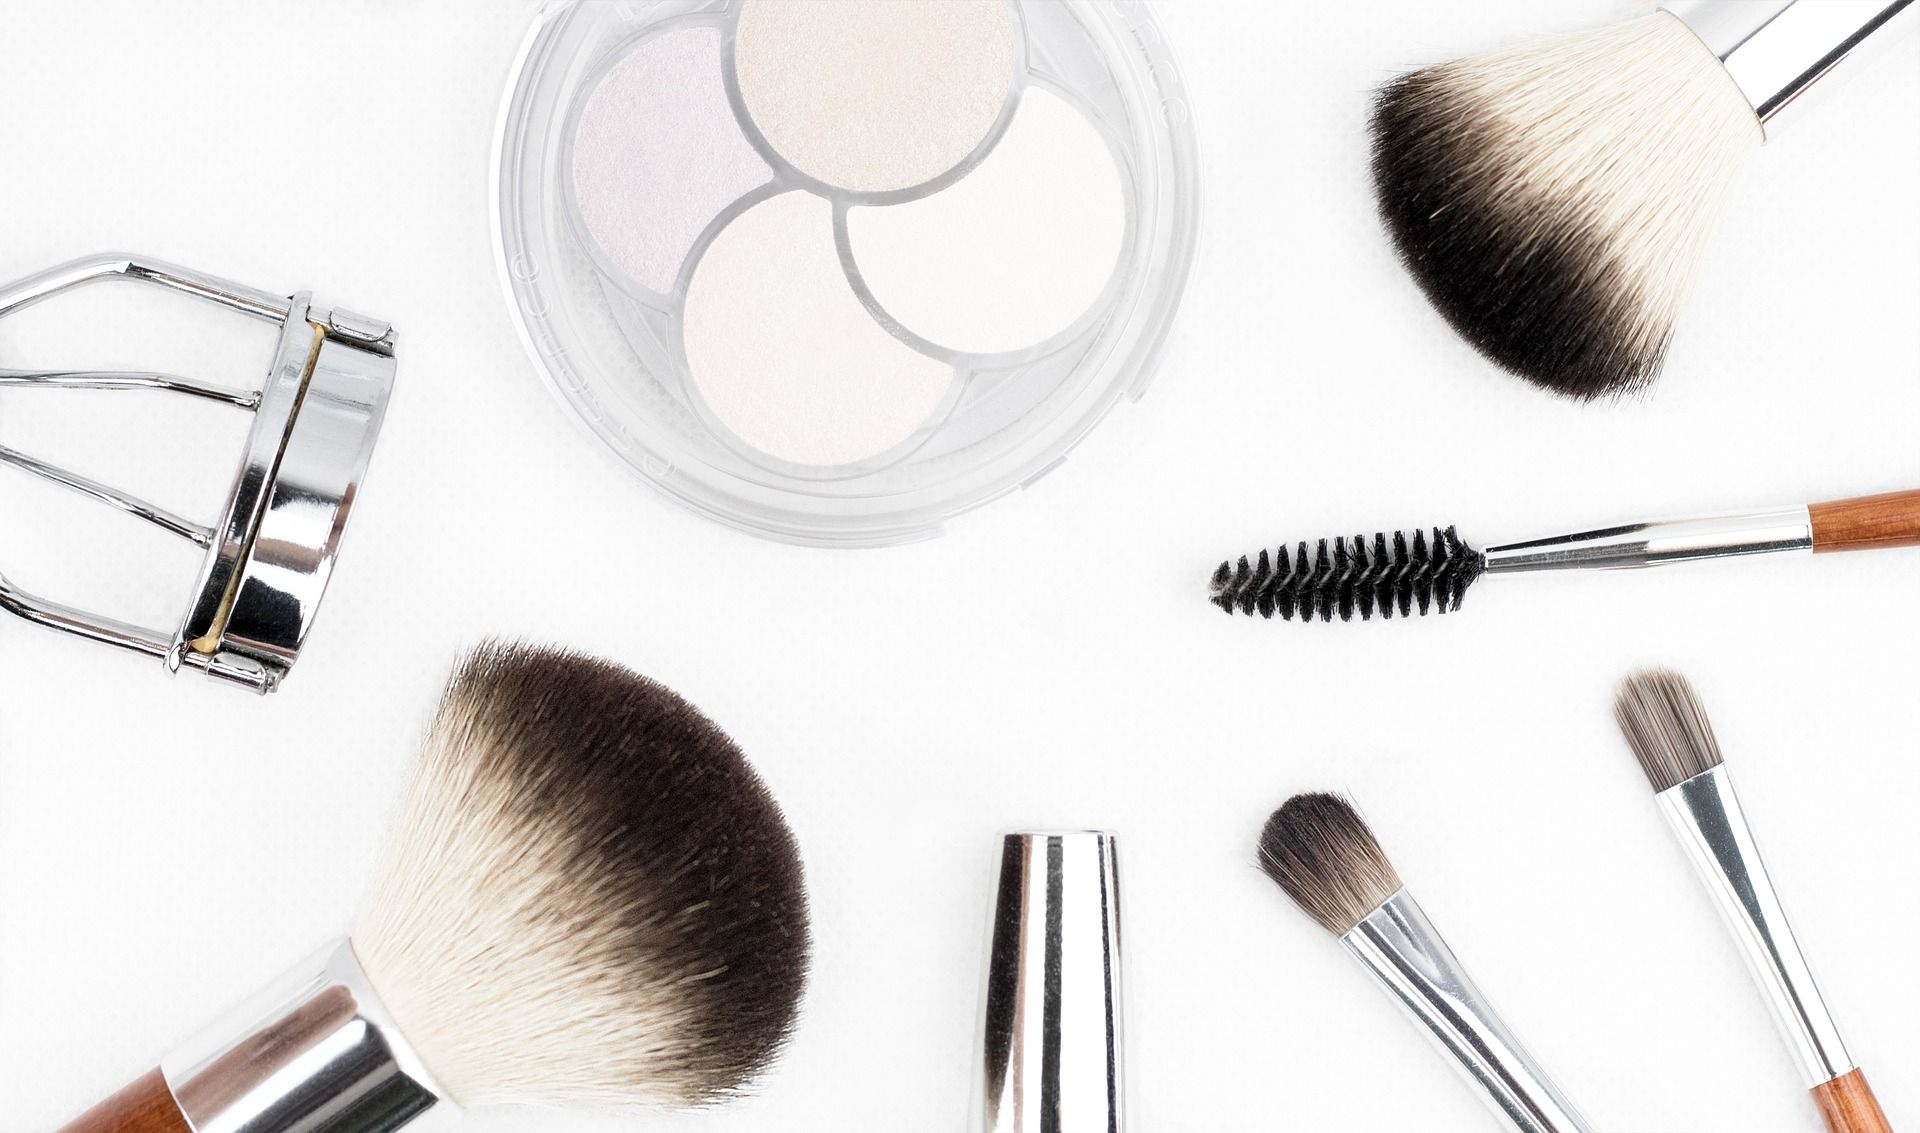 7 Fast Fixes for Makeup Mishaps